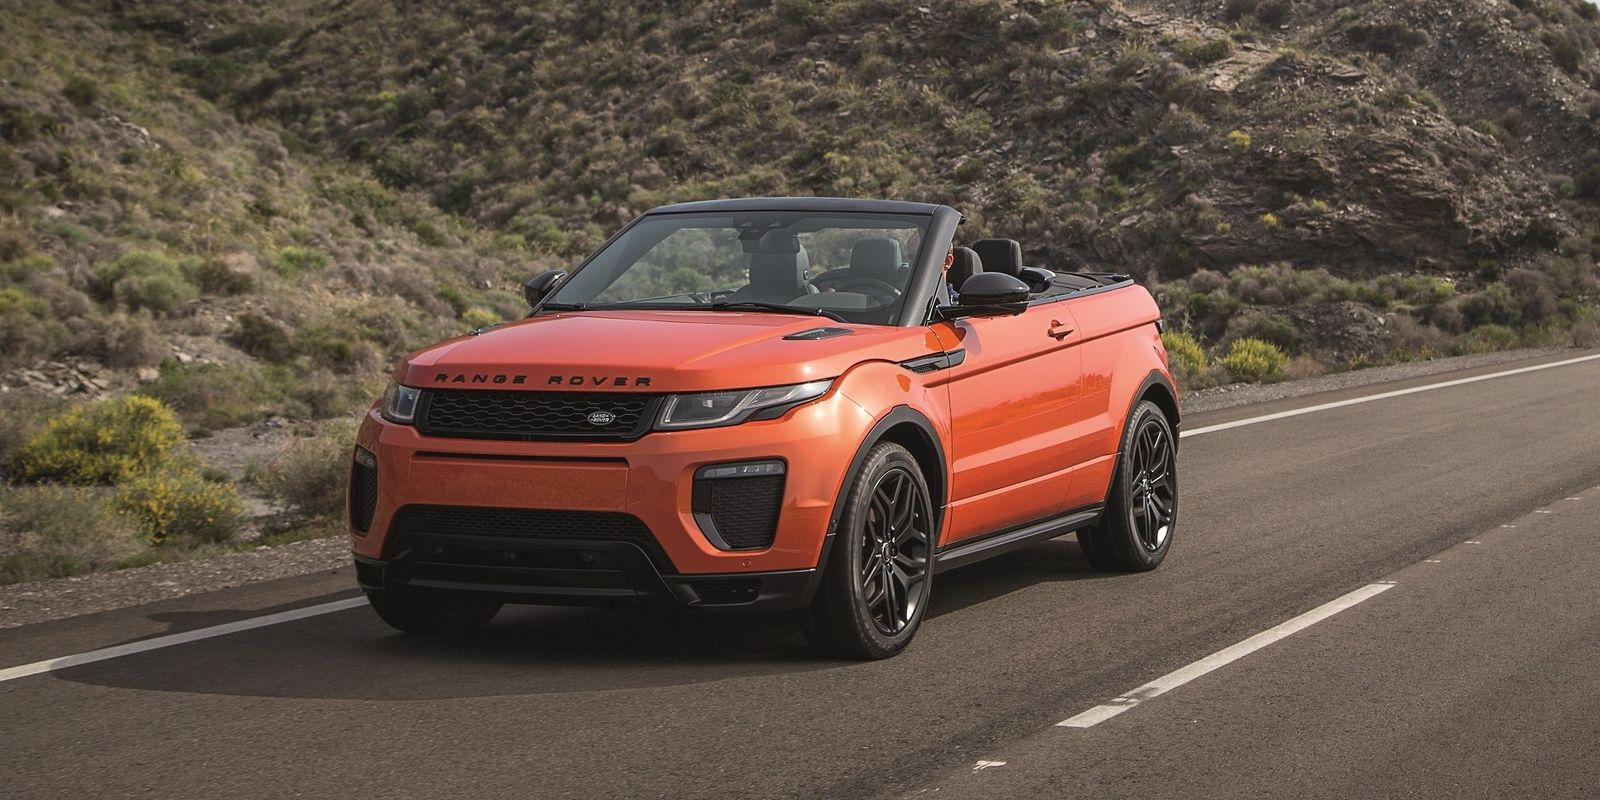 TESTRIT EVOQUE CONVERTIBLE